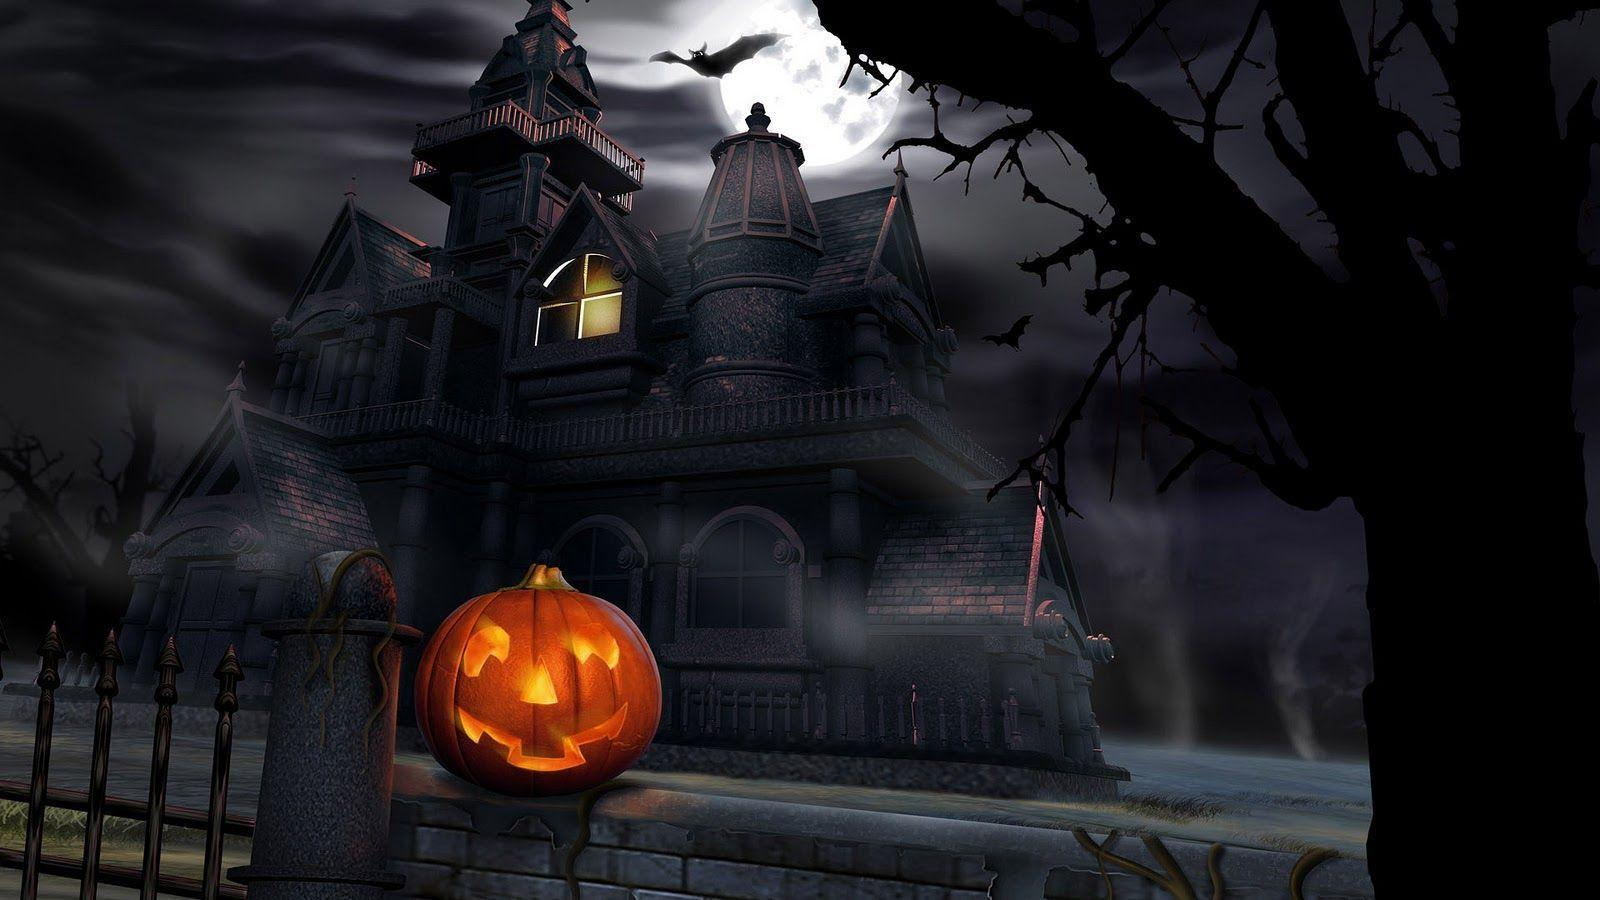 This Site Contains All About Halloween Wallpapers For Pc Page Tagsdownload Free Halloween Wallpaper For Mac Os X El Capitanhappy Halloween Live Animated